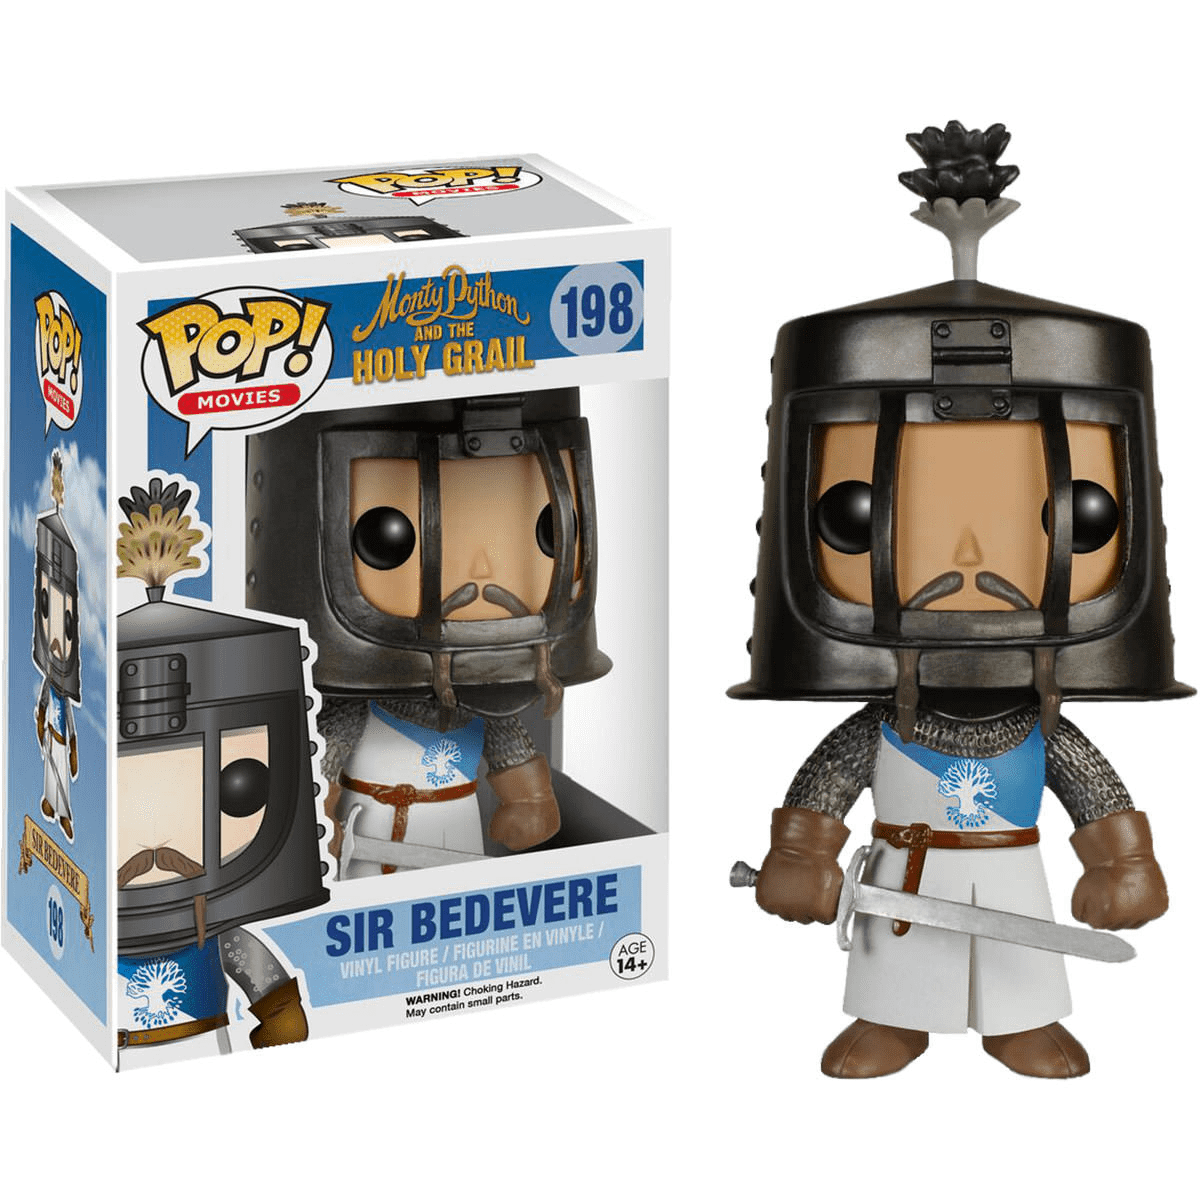 MONTY PYTHON AND THE HOLY GRAIL - SIR BEDEVERE POP! VINYL FIGURE